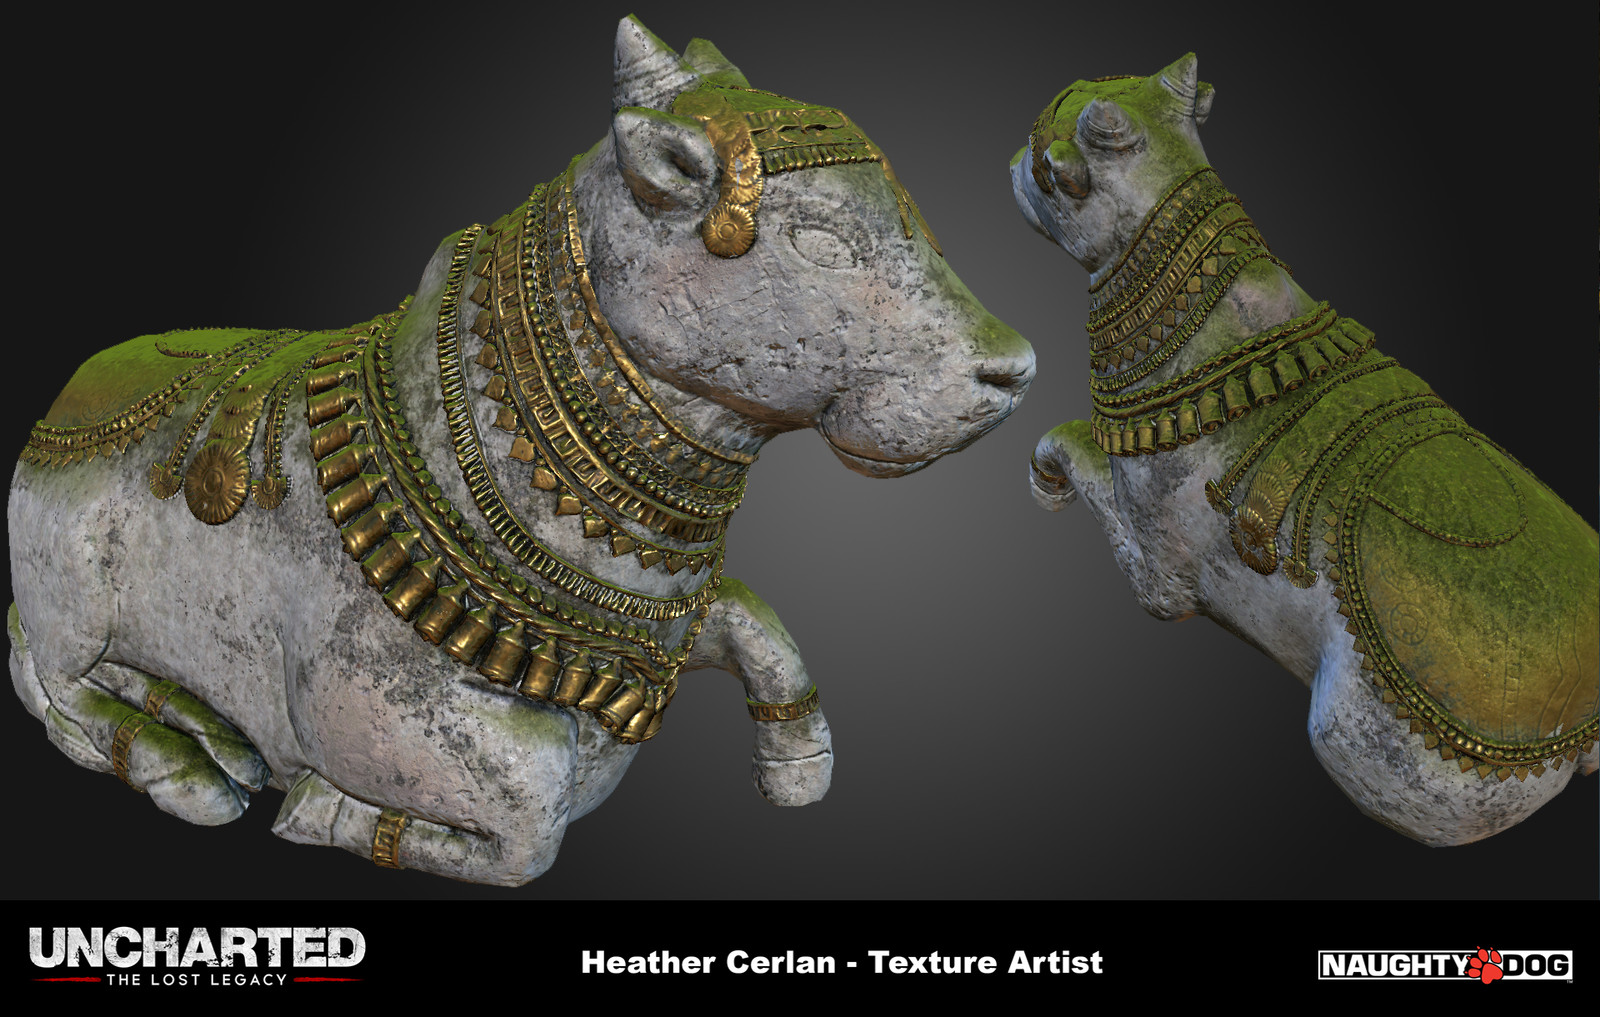 Here's the final low res mesh textured with tiling materials/textures I made.